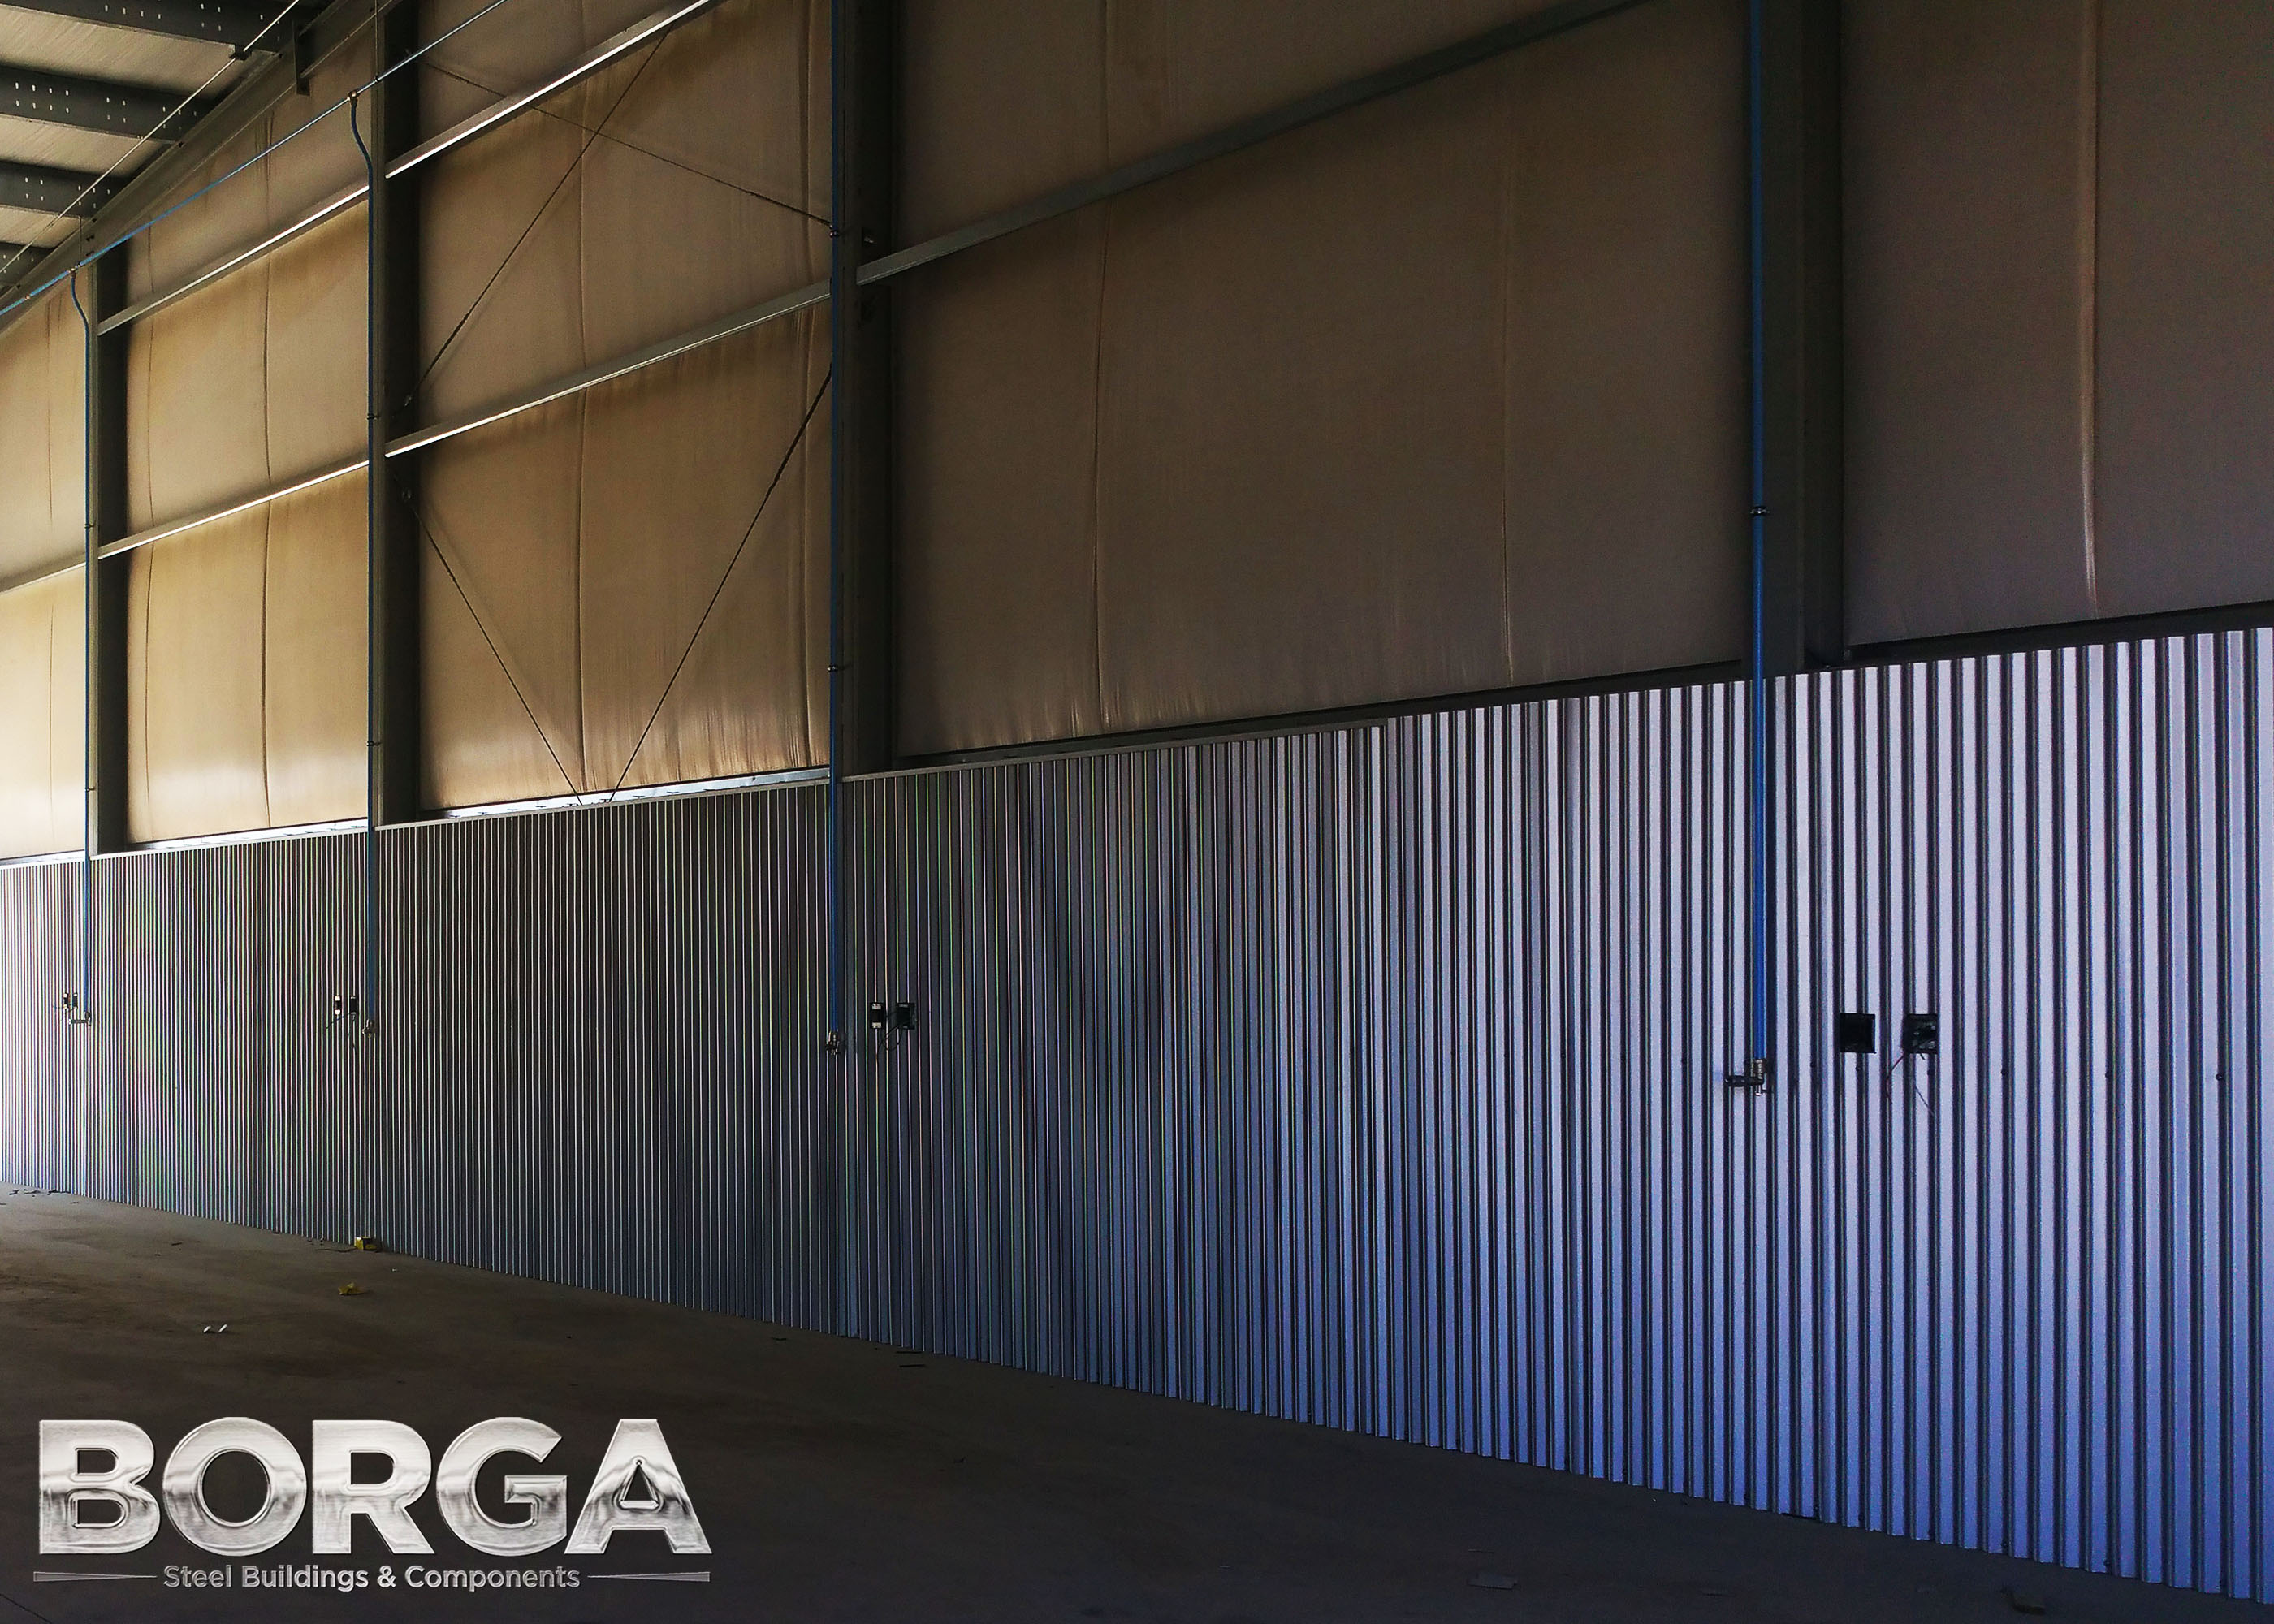 borga steel buildings roofing metal fresno ca corcoran ag farming tan brown agriculture 4